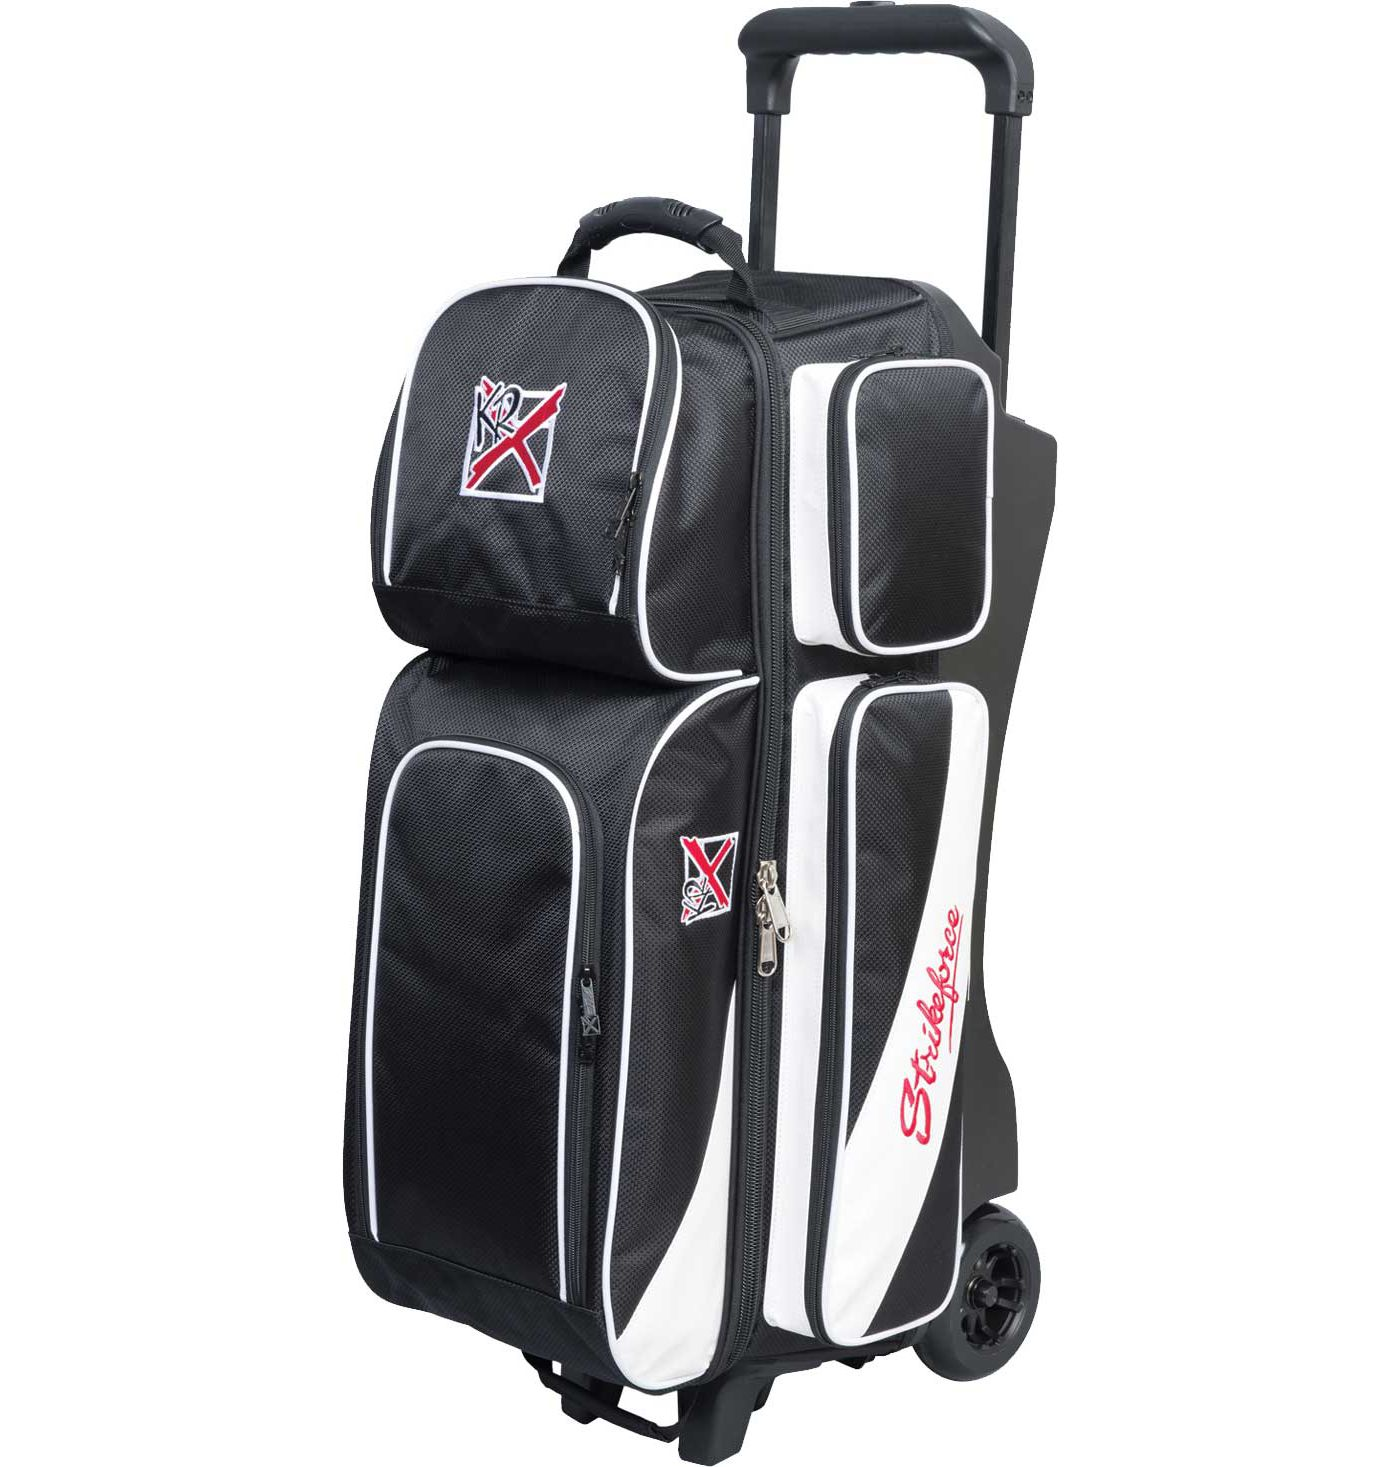 Strikeforce Fast Triple Ball Roller Bowling Bag